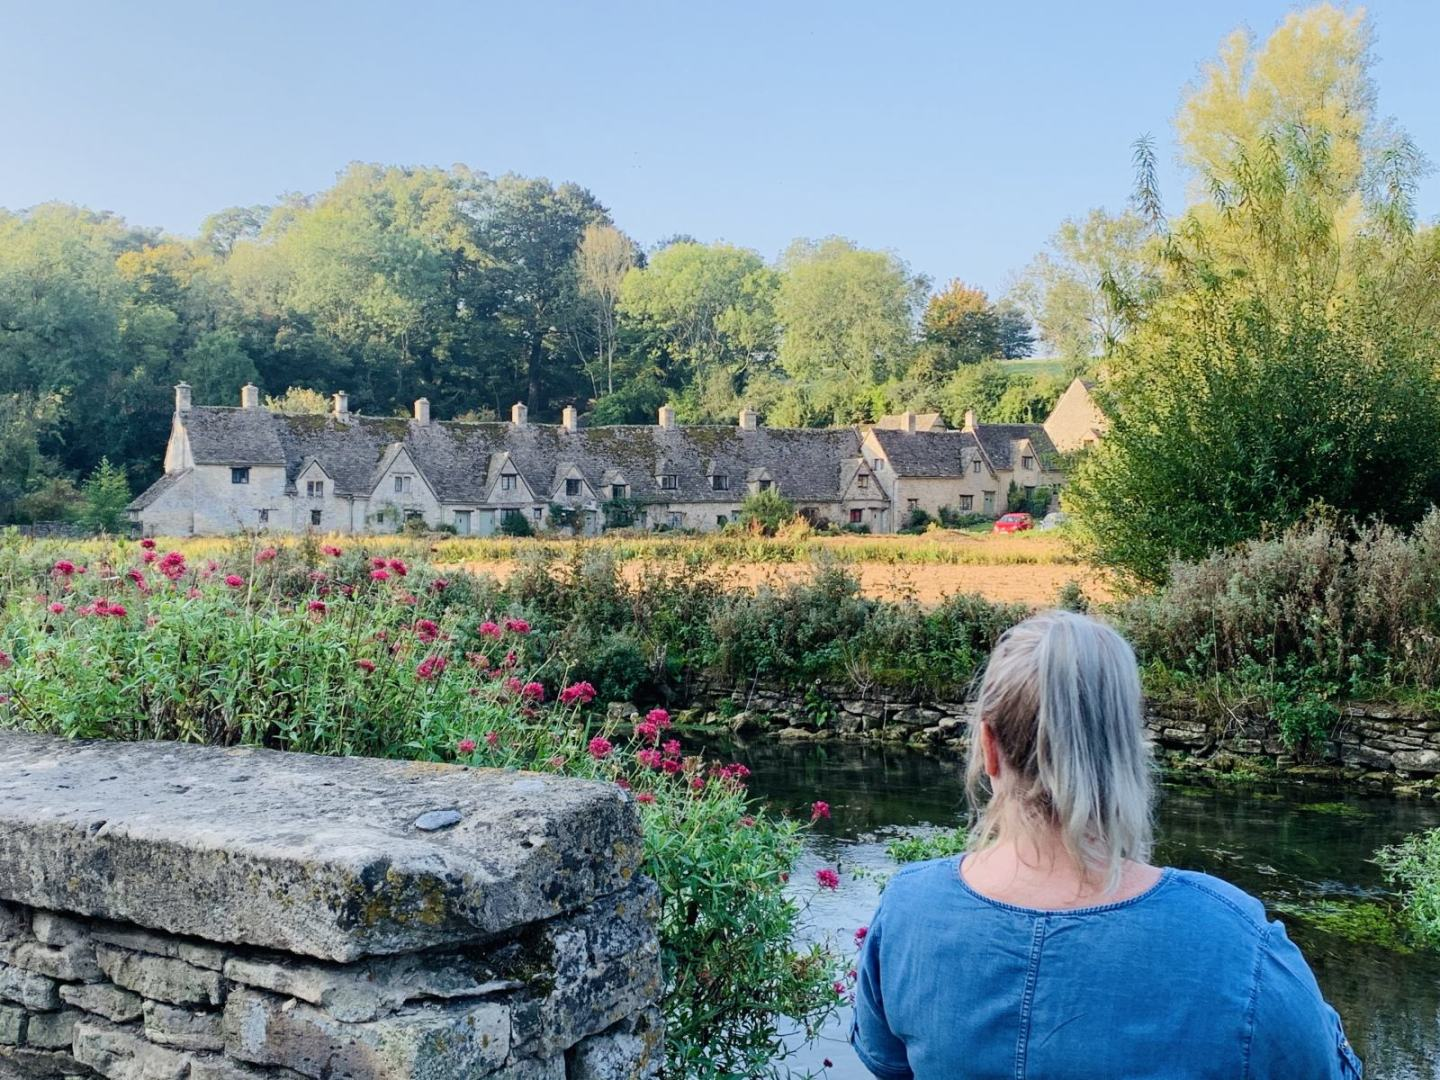 Kerry is sitting by the river, looking out towards a beautiful row of old cottages. places to visit Cotswolds